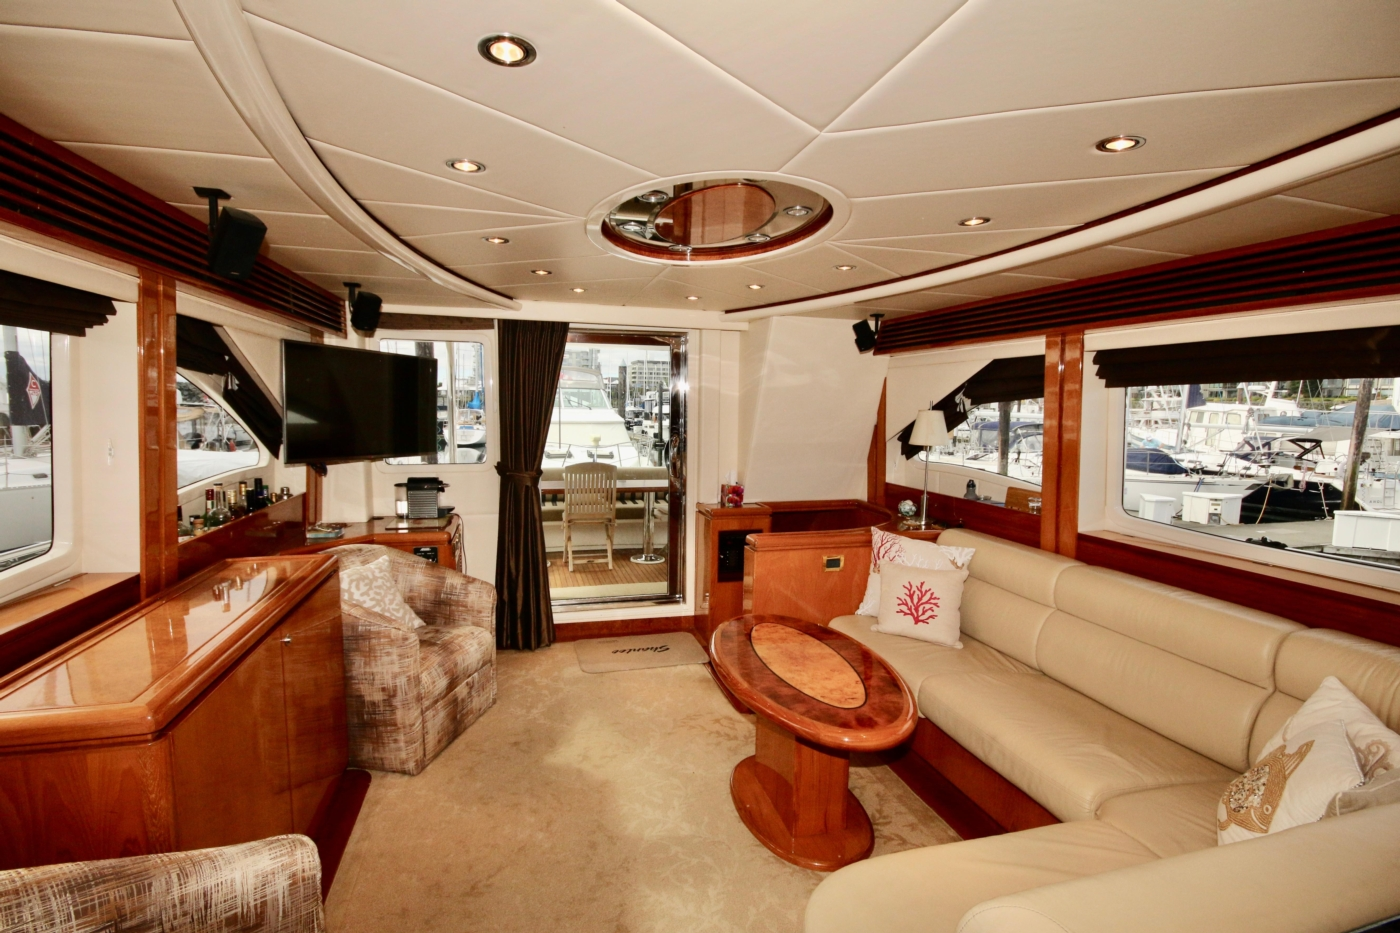 2002 Monte Fino 68, Looking Aft in the Salon